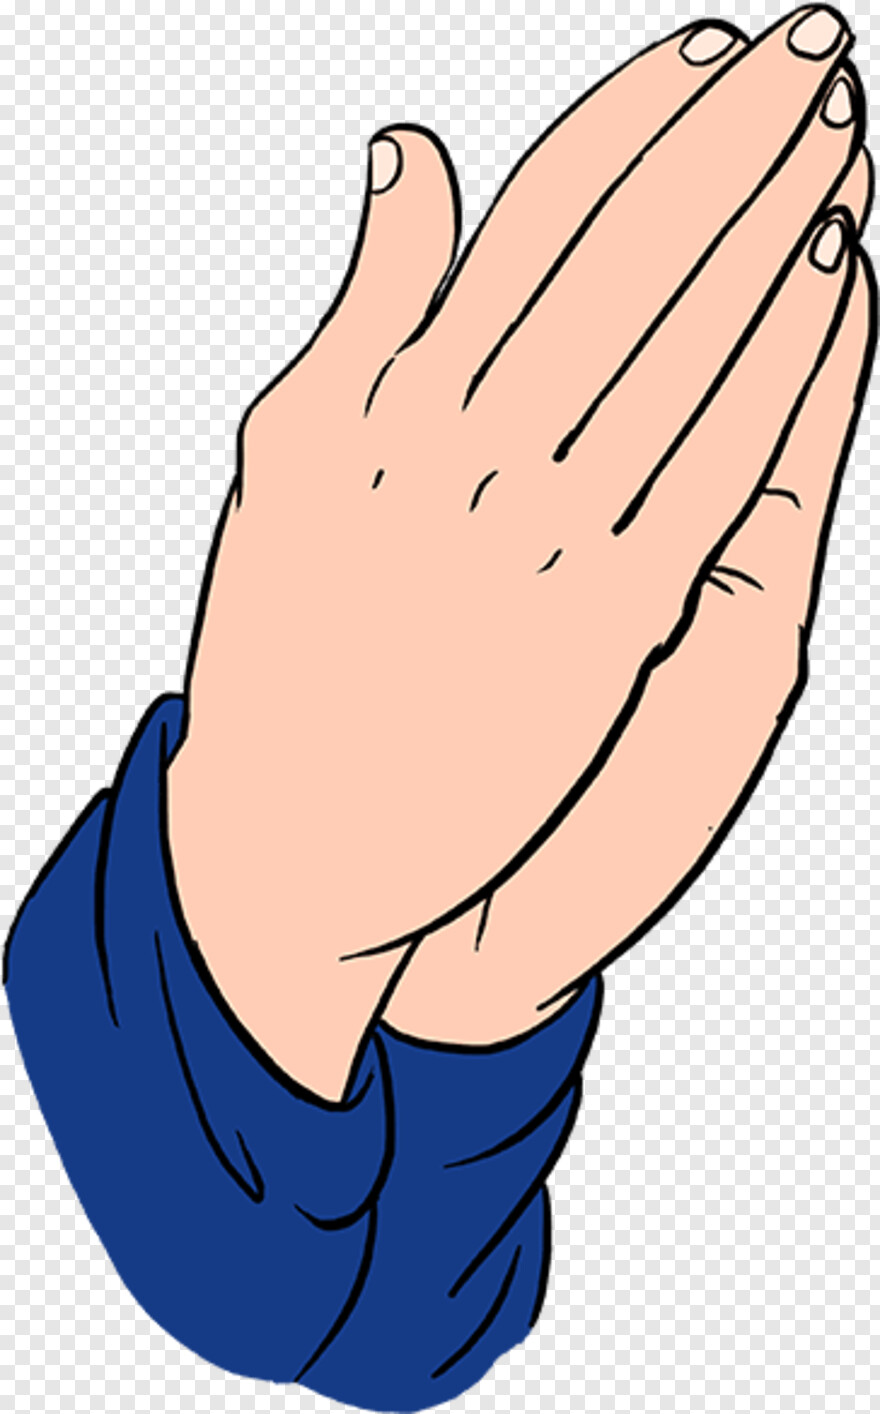 Praying Emoji Drawings Of Praying Hands Easy Png Download 680x678 3735686 Png Image Pngjoy Collection of namaste cliparts (30) transparent prayer hands png namaskar praying hands easy png download